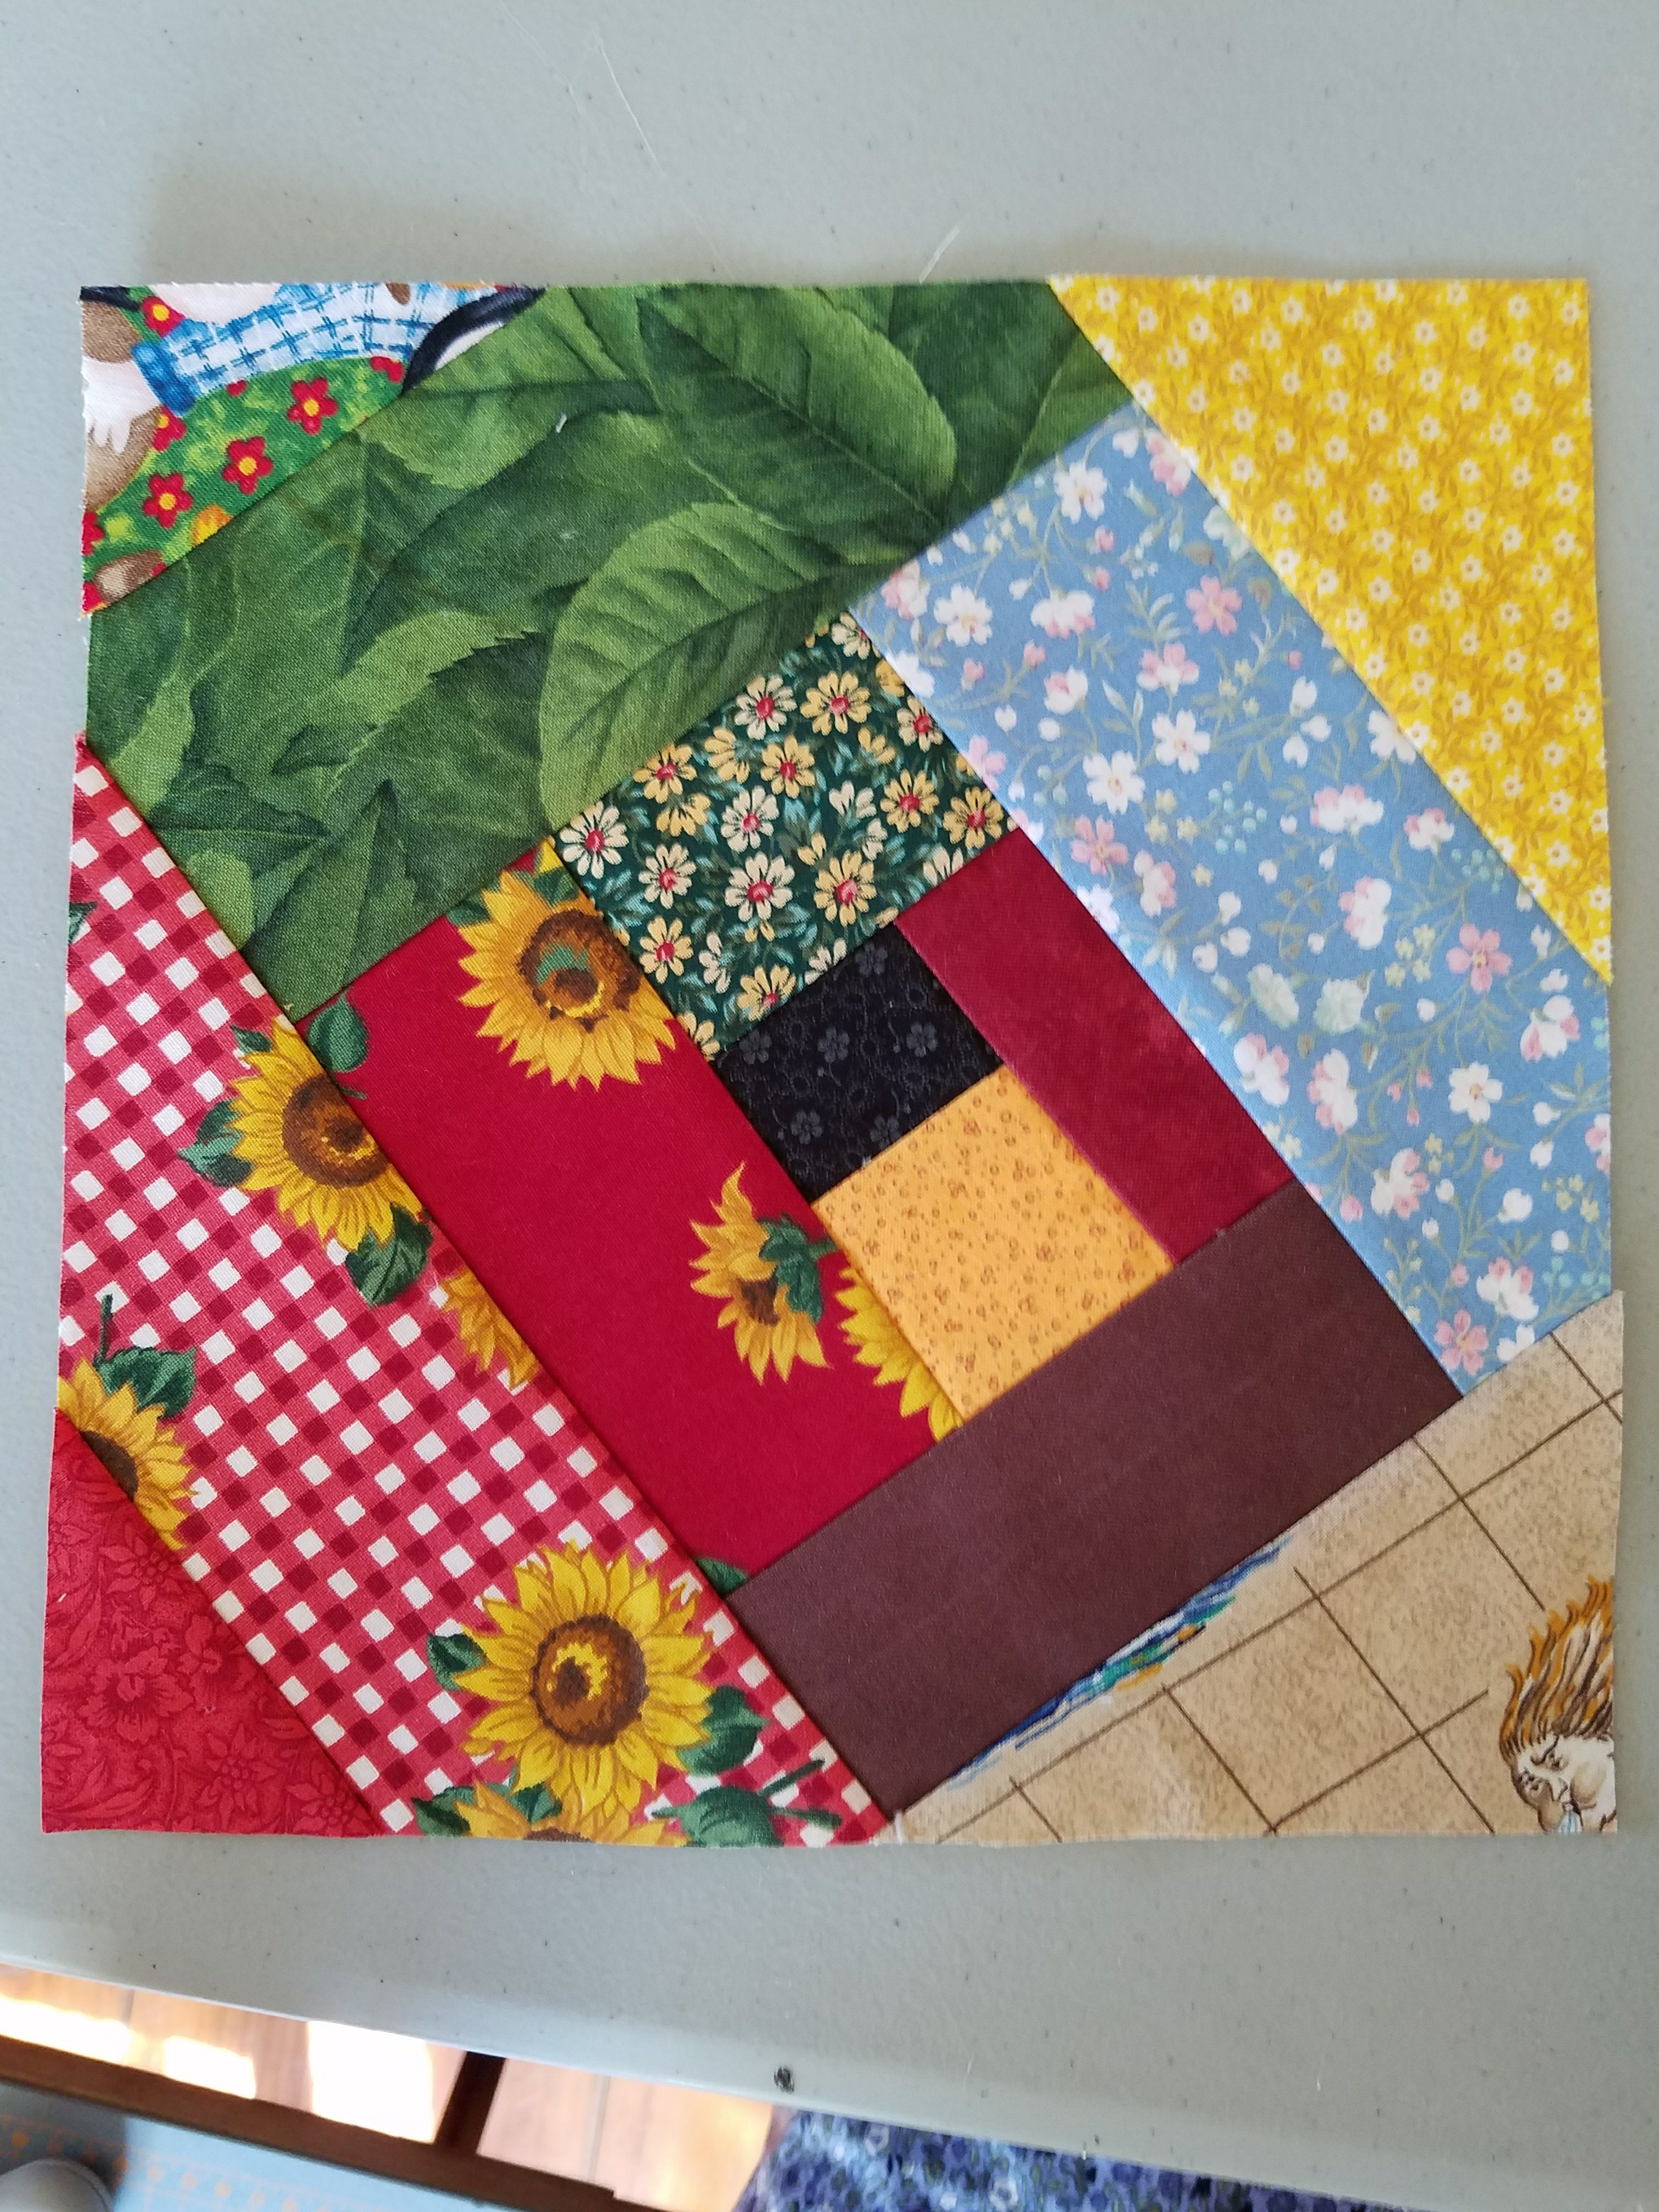 Foundation Pieced Crazy Quilt Block Sewing With Treadles